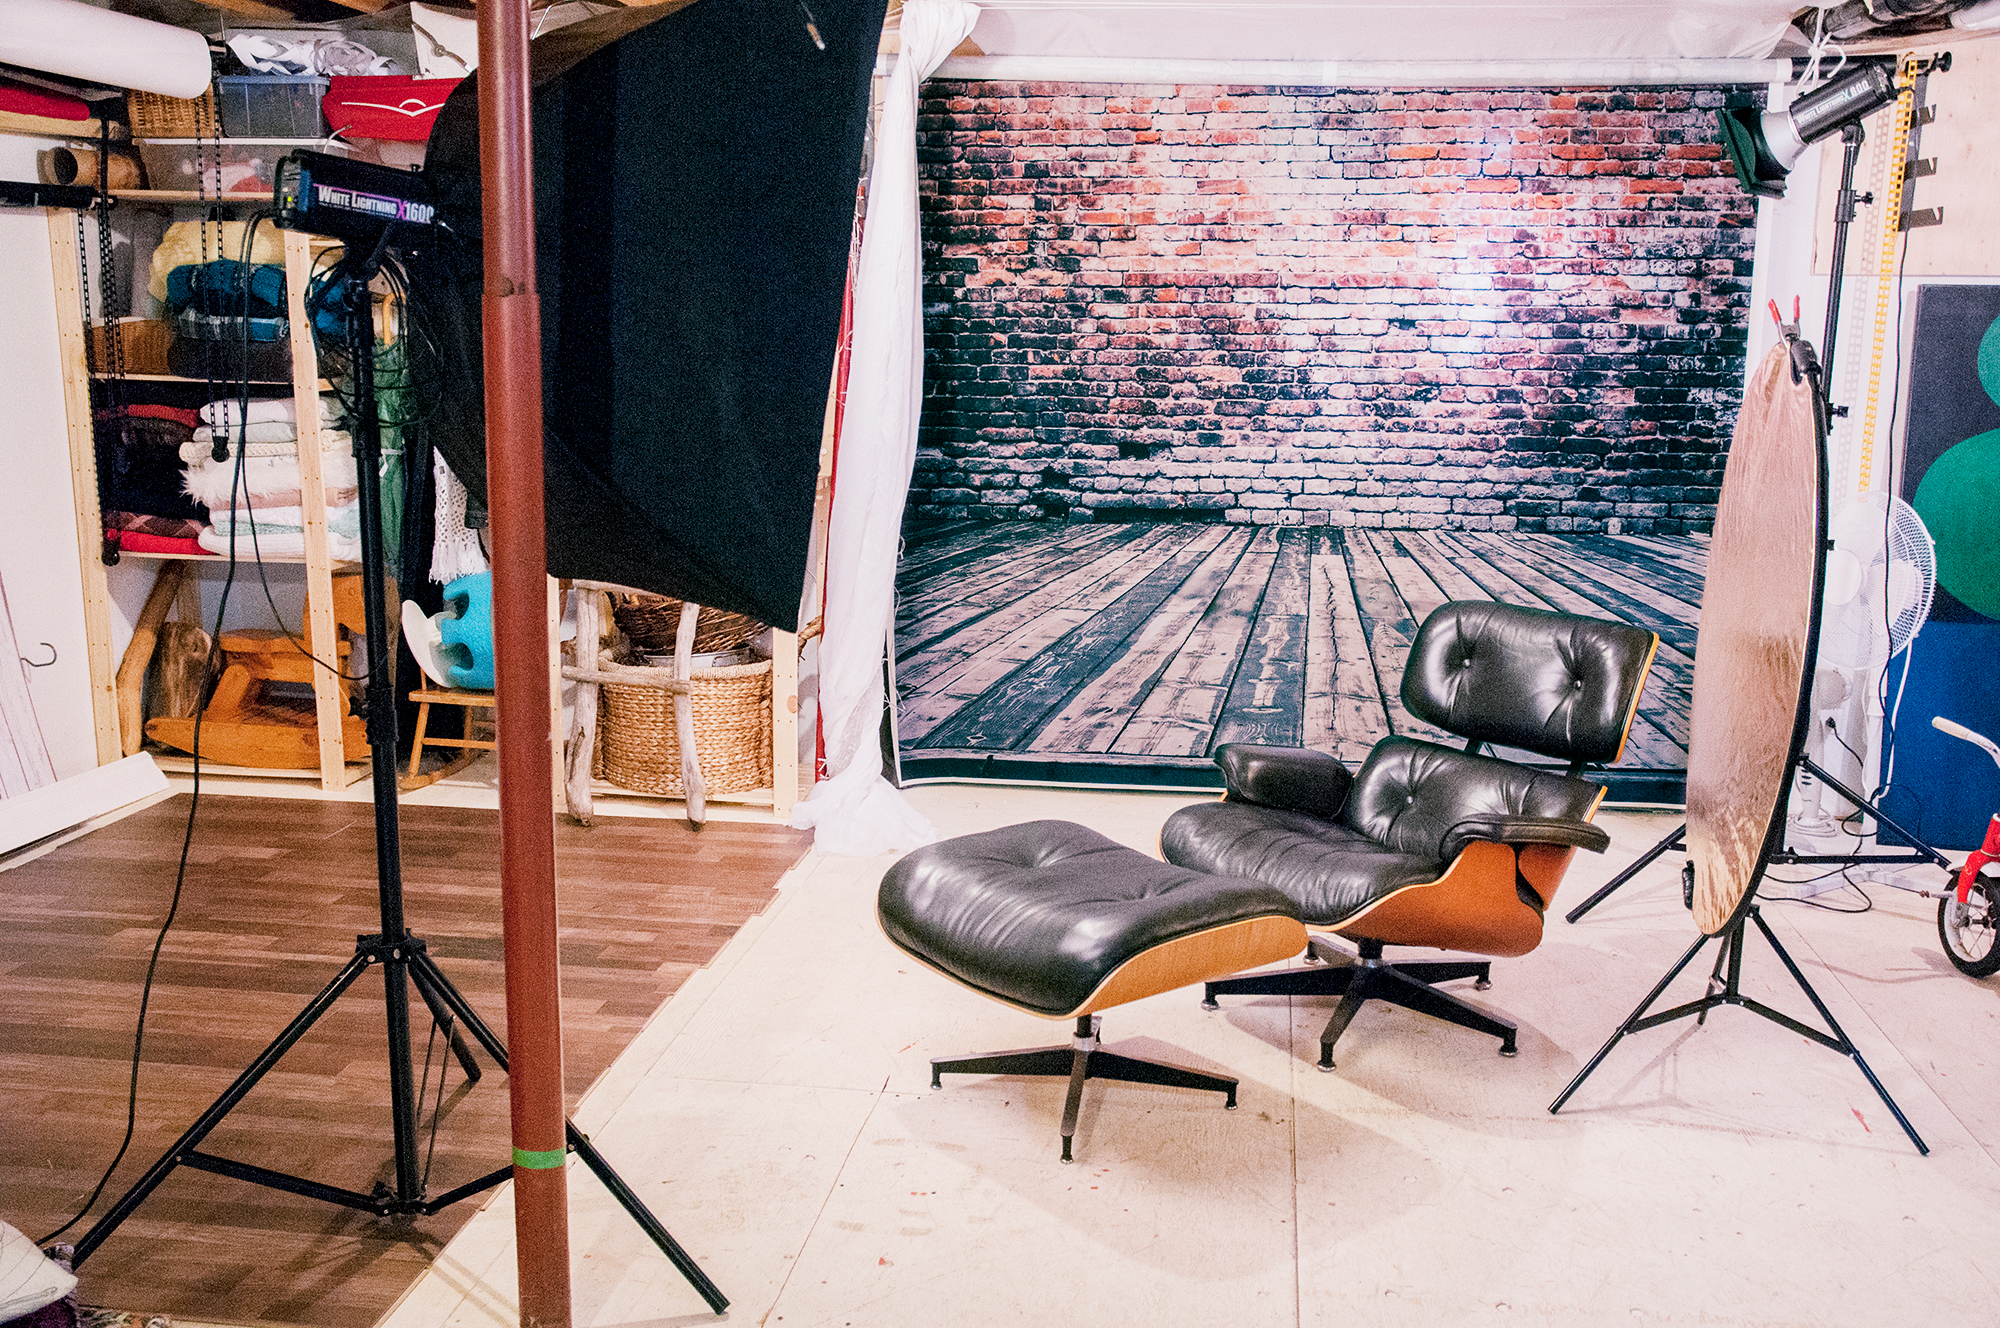 Set 1 with Eames Chair